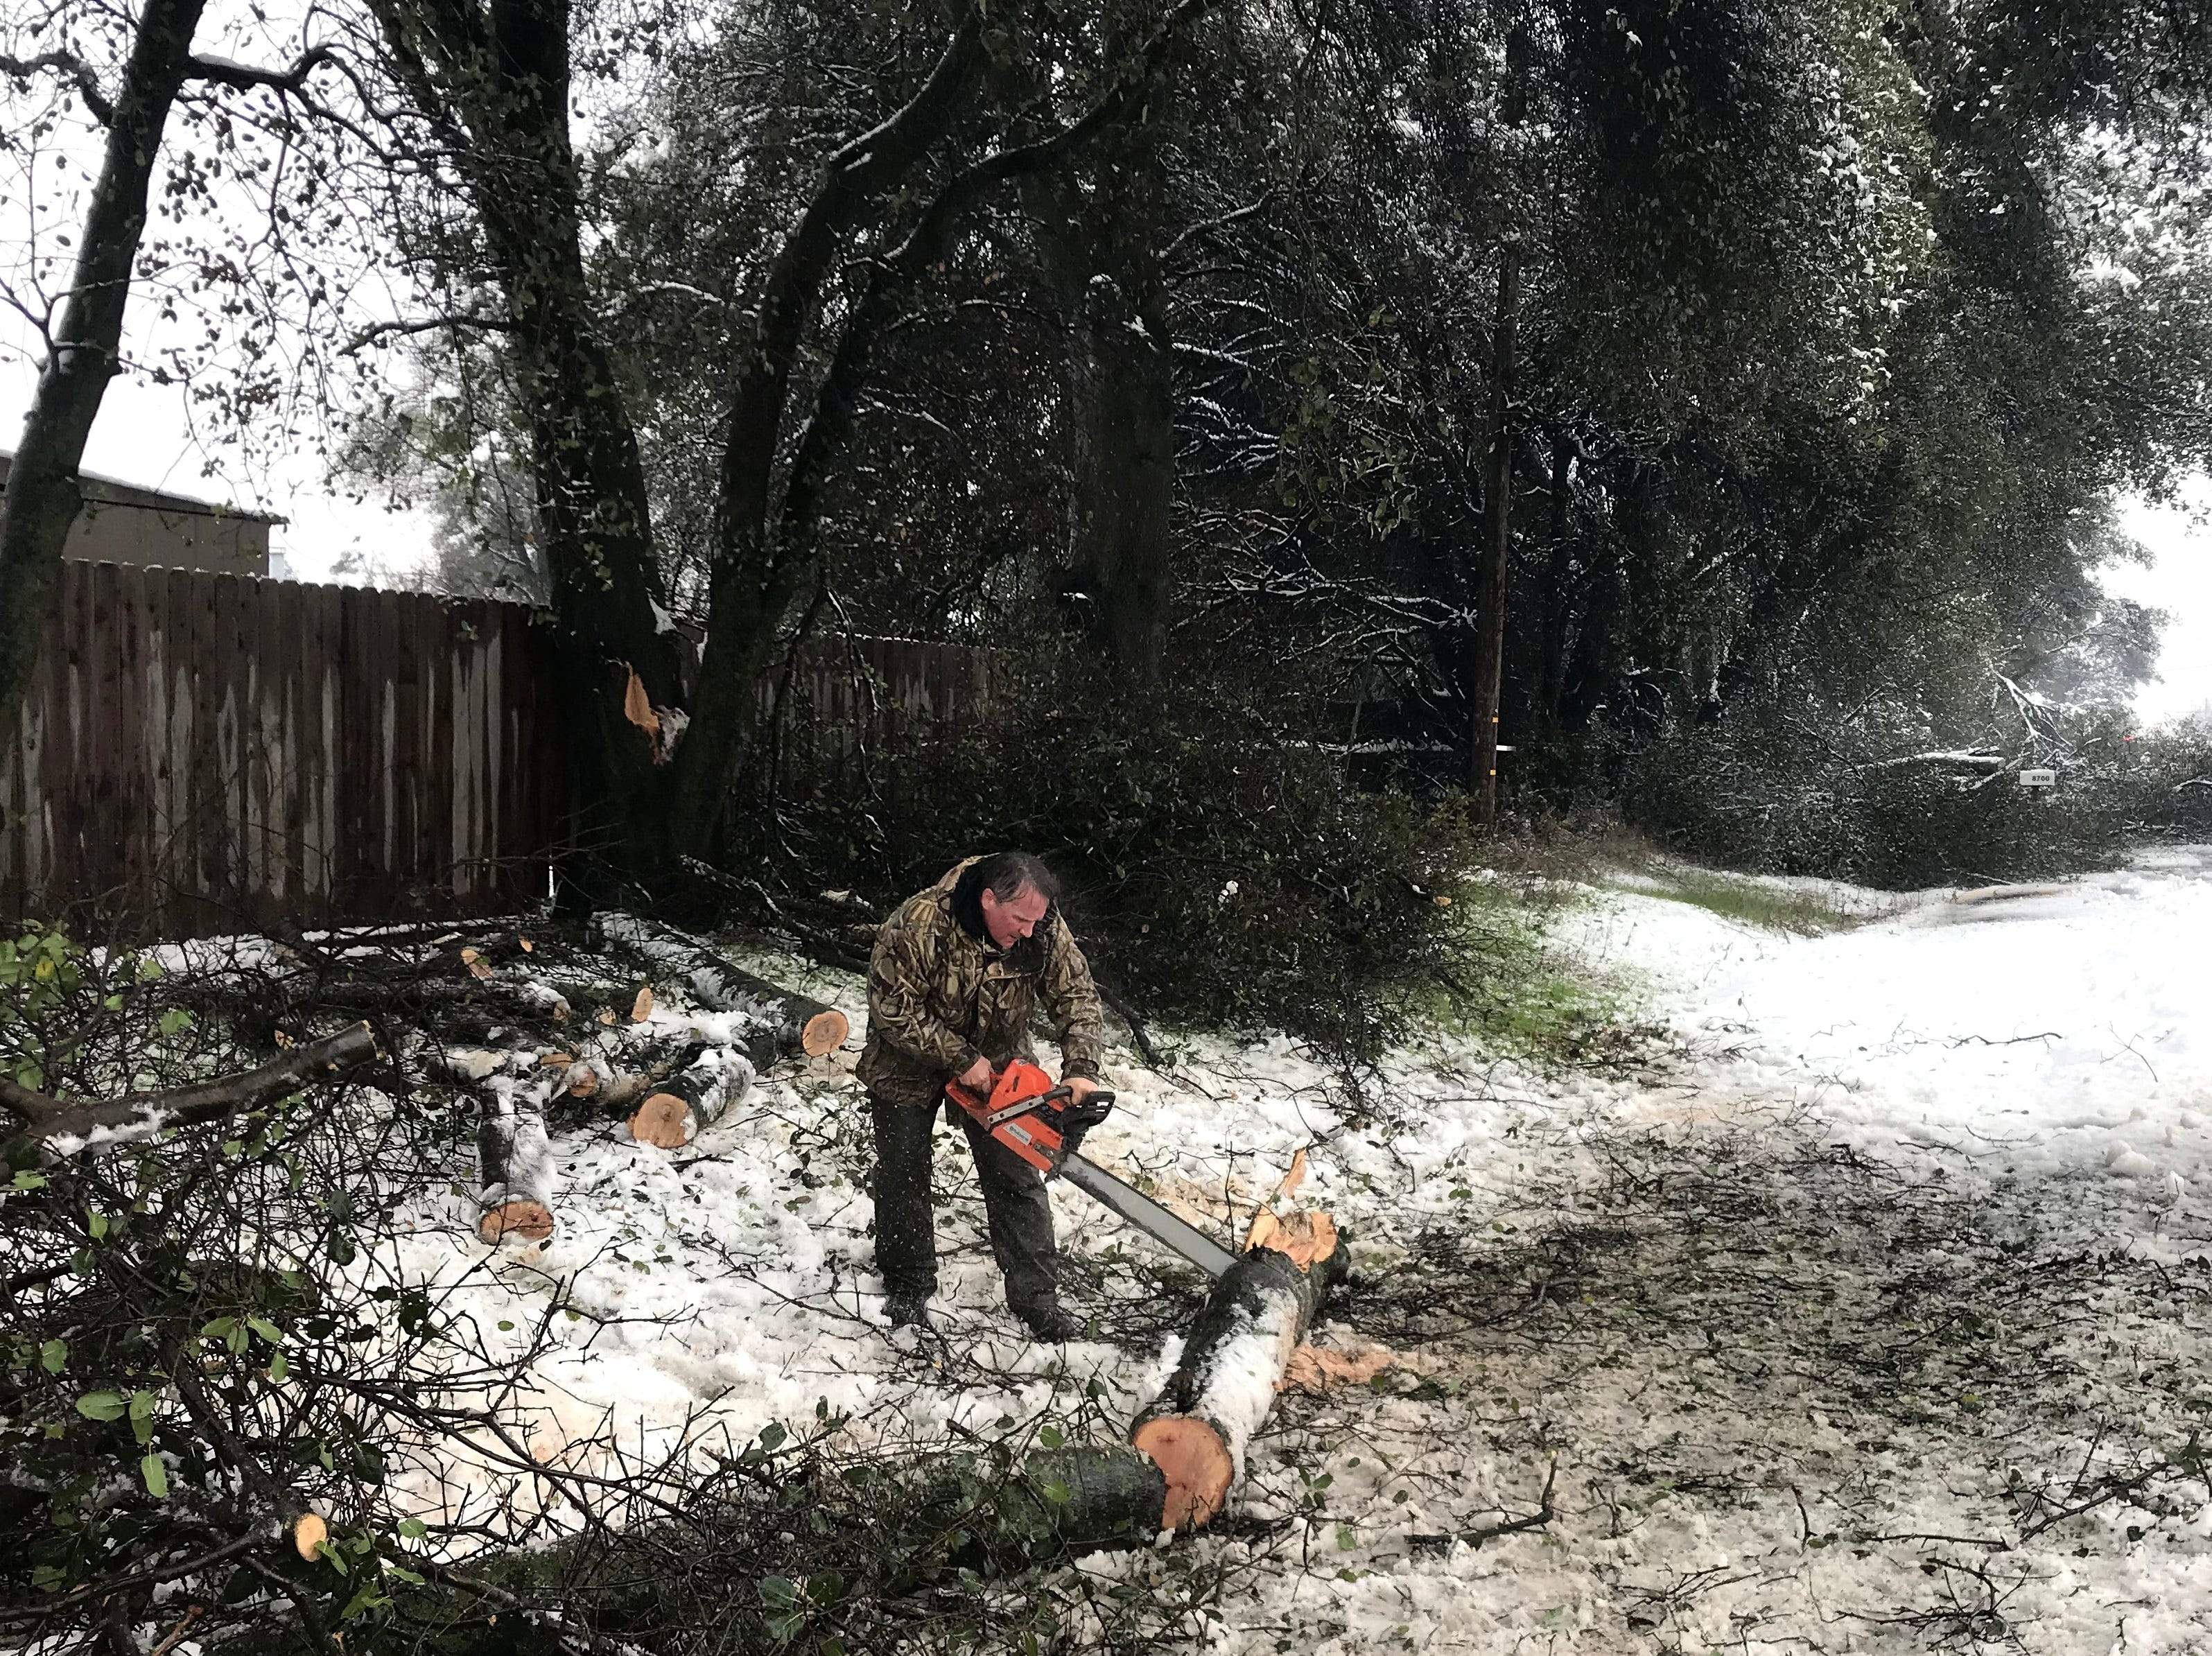 A man clears broken branches from alongside the road Wednesday.